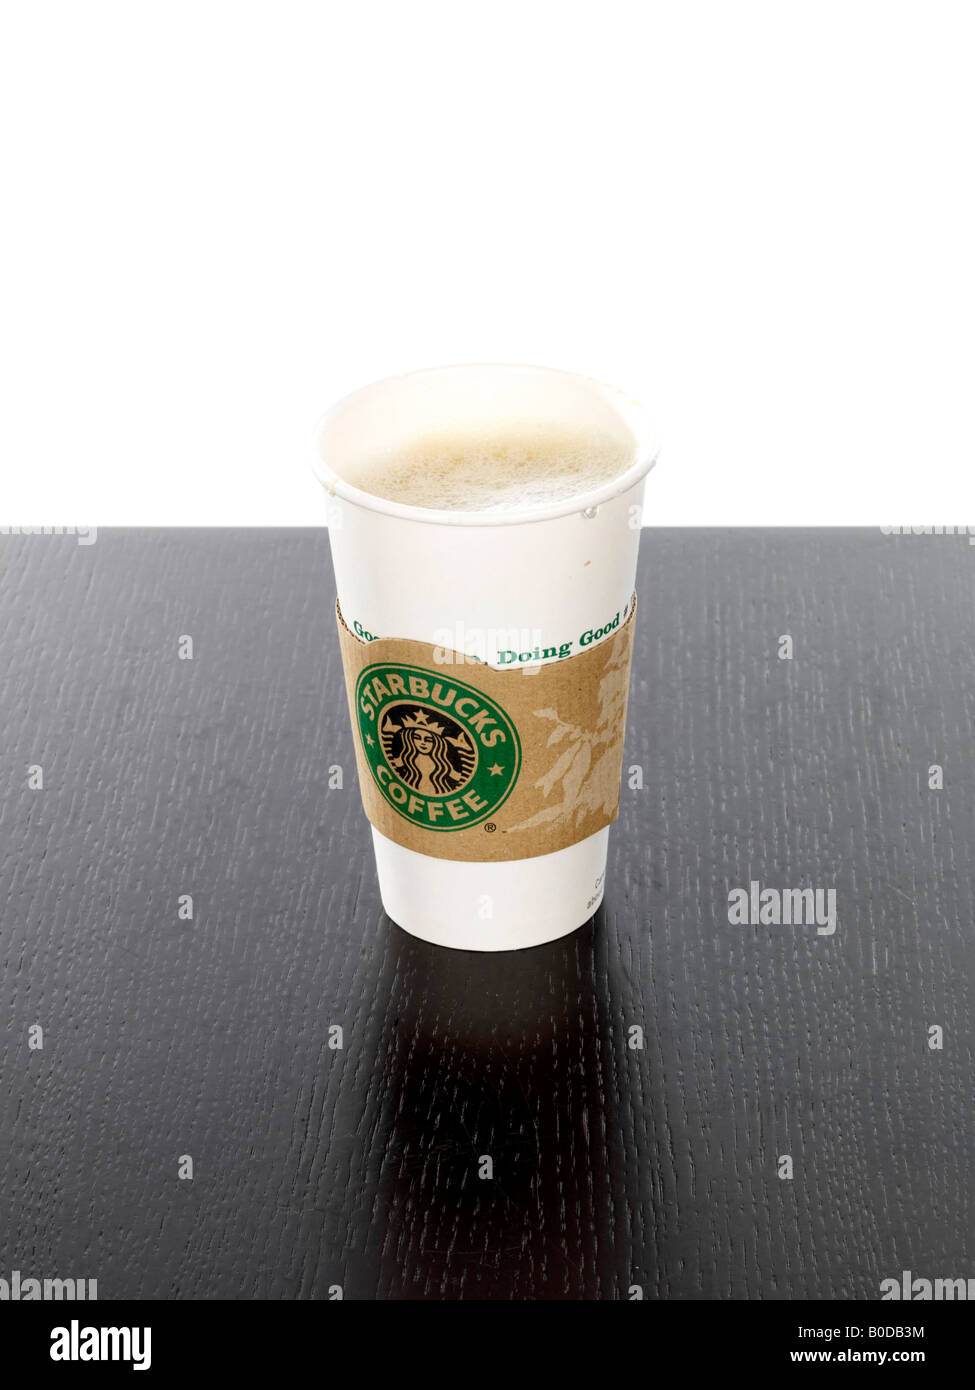 Starbucks skinny latte stock photo royalty free image 17504472 alamy starbucks skinny latte sisterspd